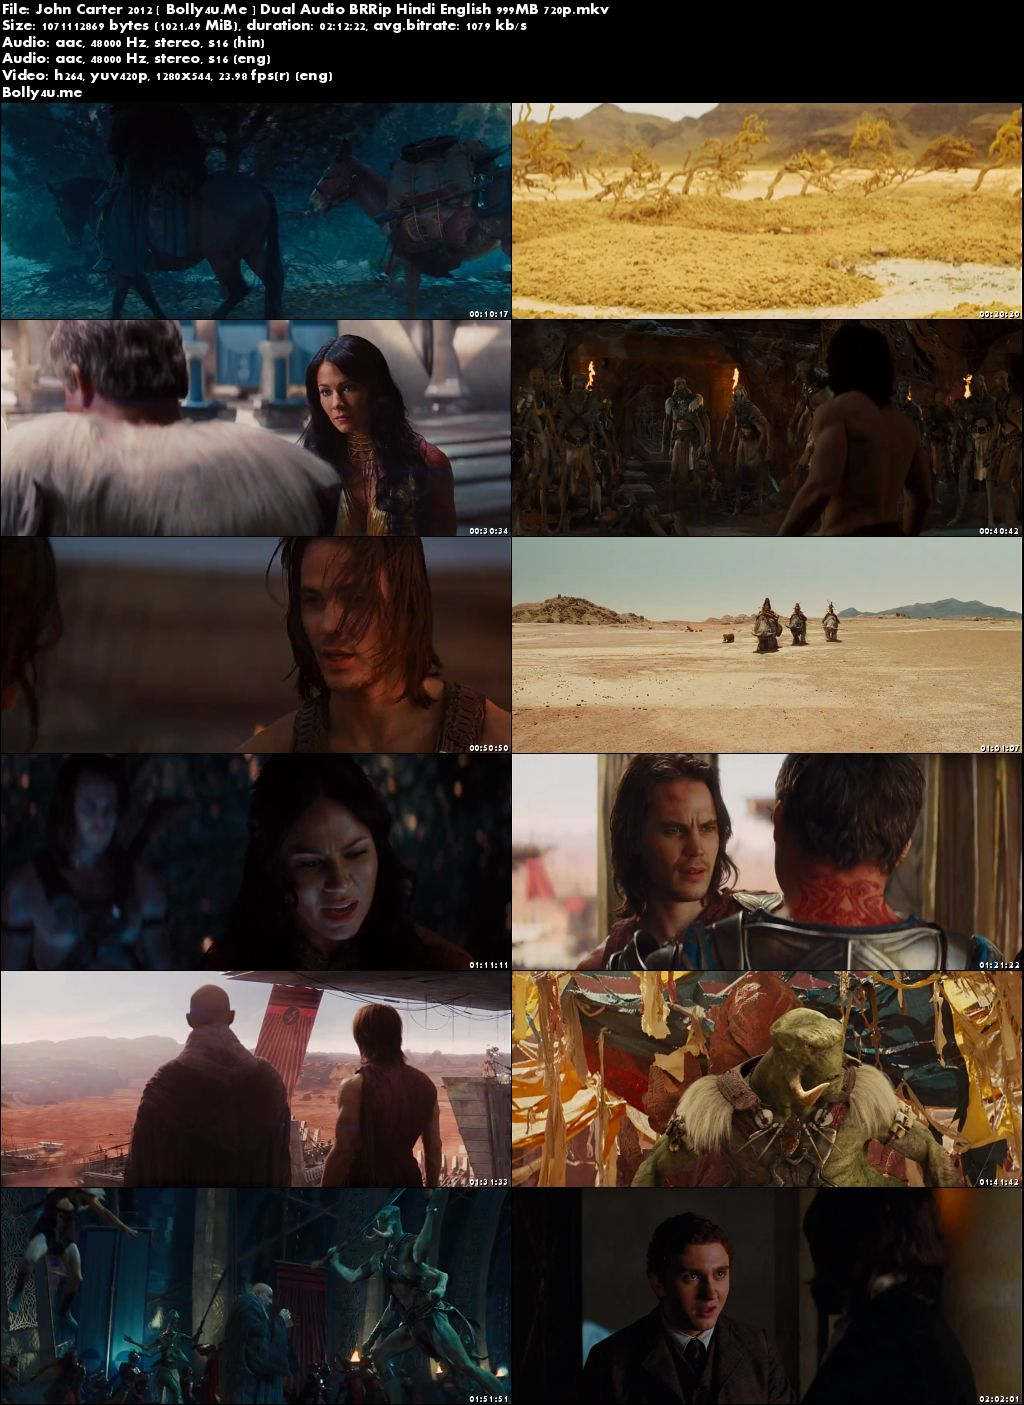 John Carter 2012 BRRip 999MB Hindi Dual Audio 720p Download